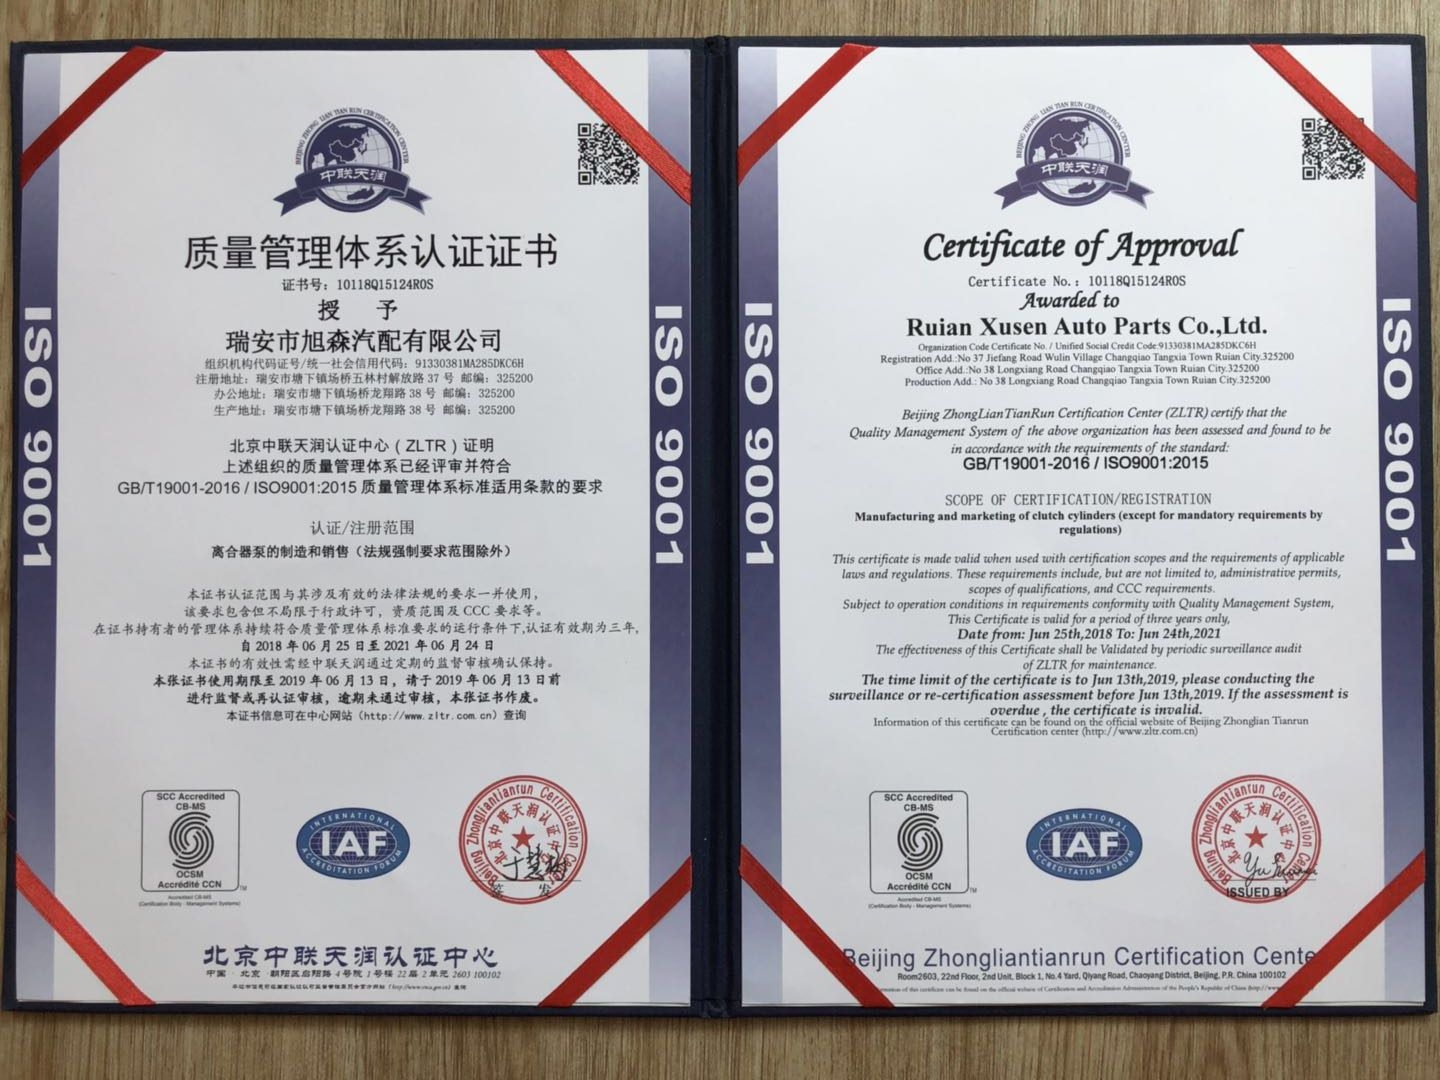 Ruian Xusen Auto Parts Coltd Get Iso90012015 Certification